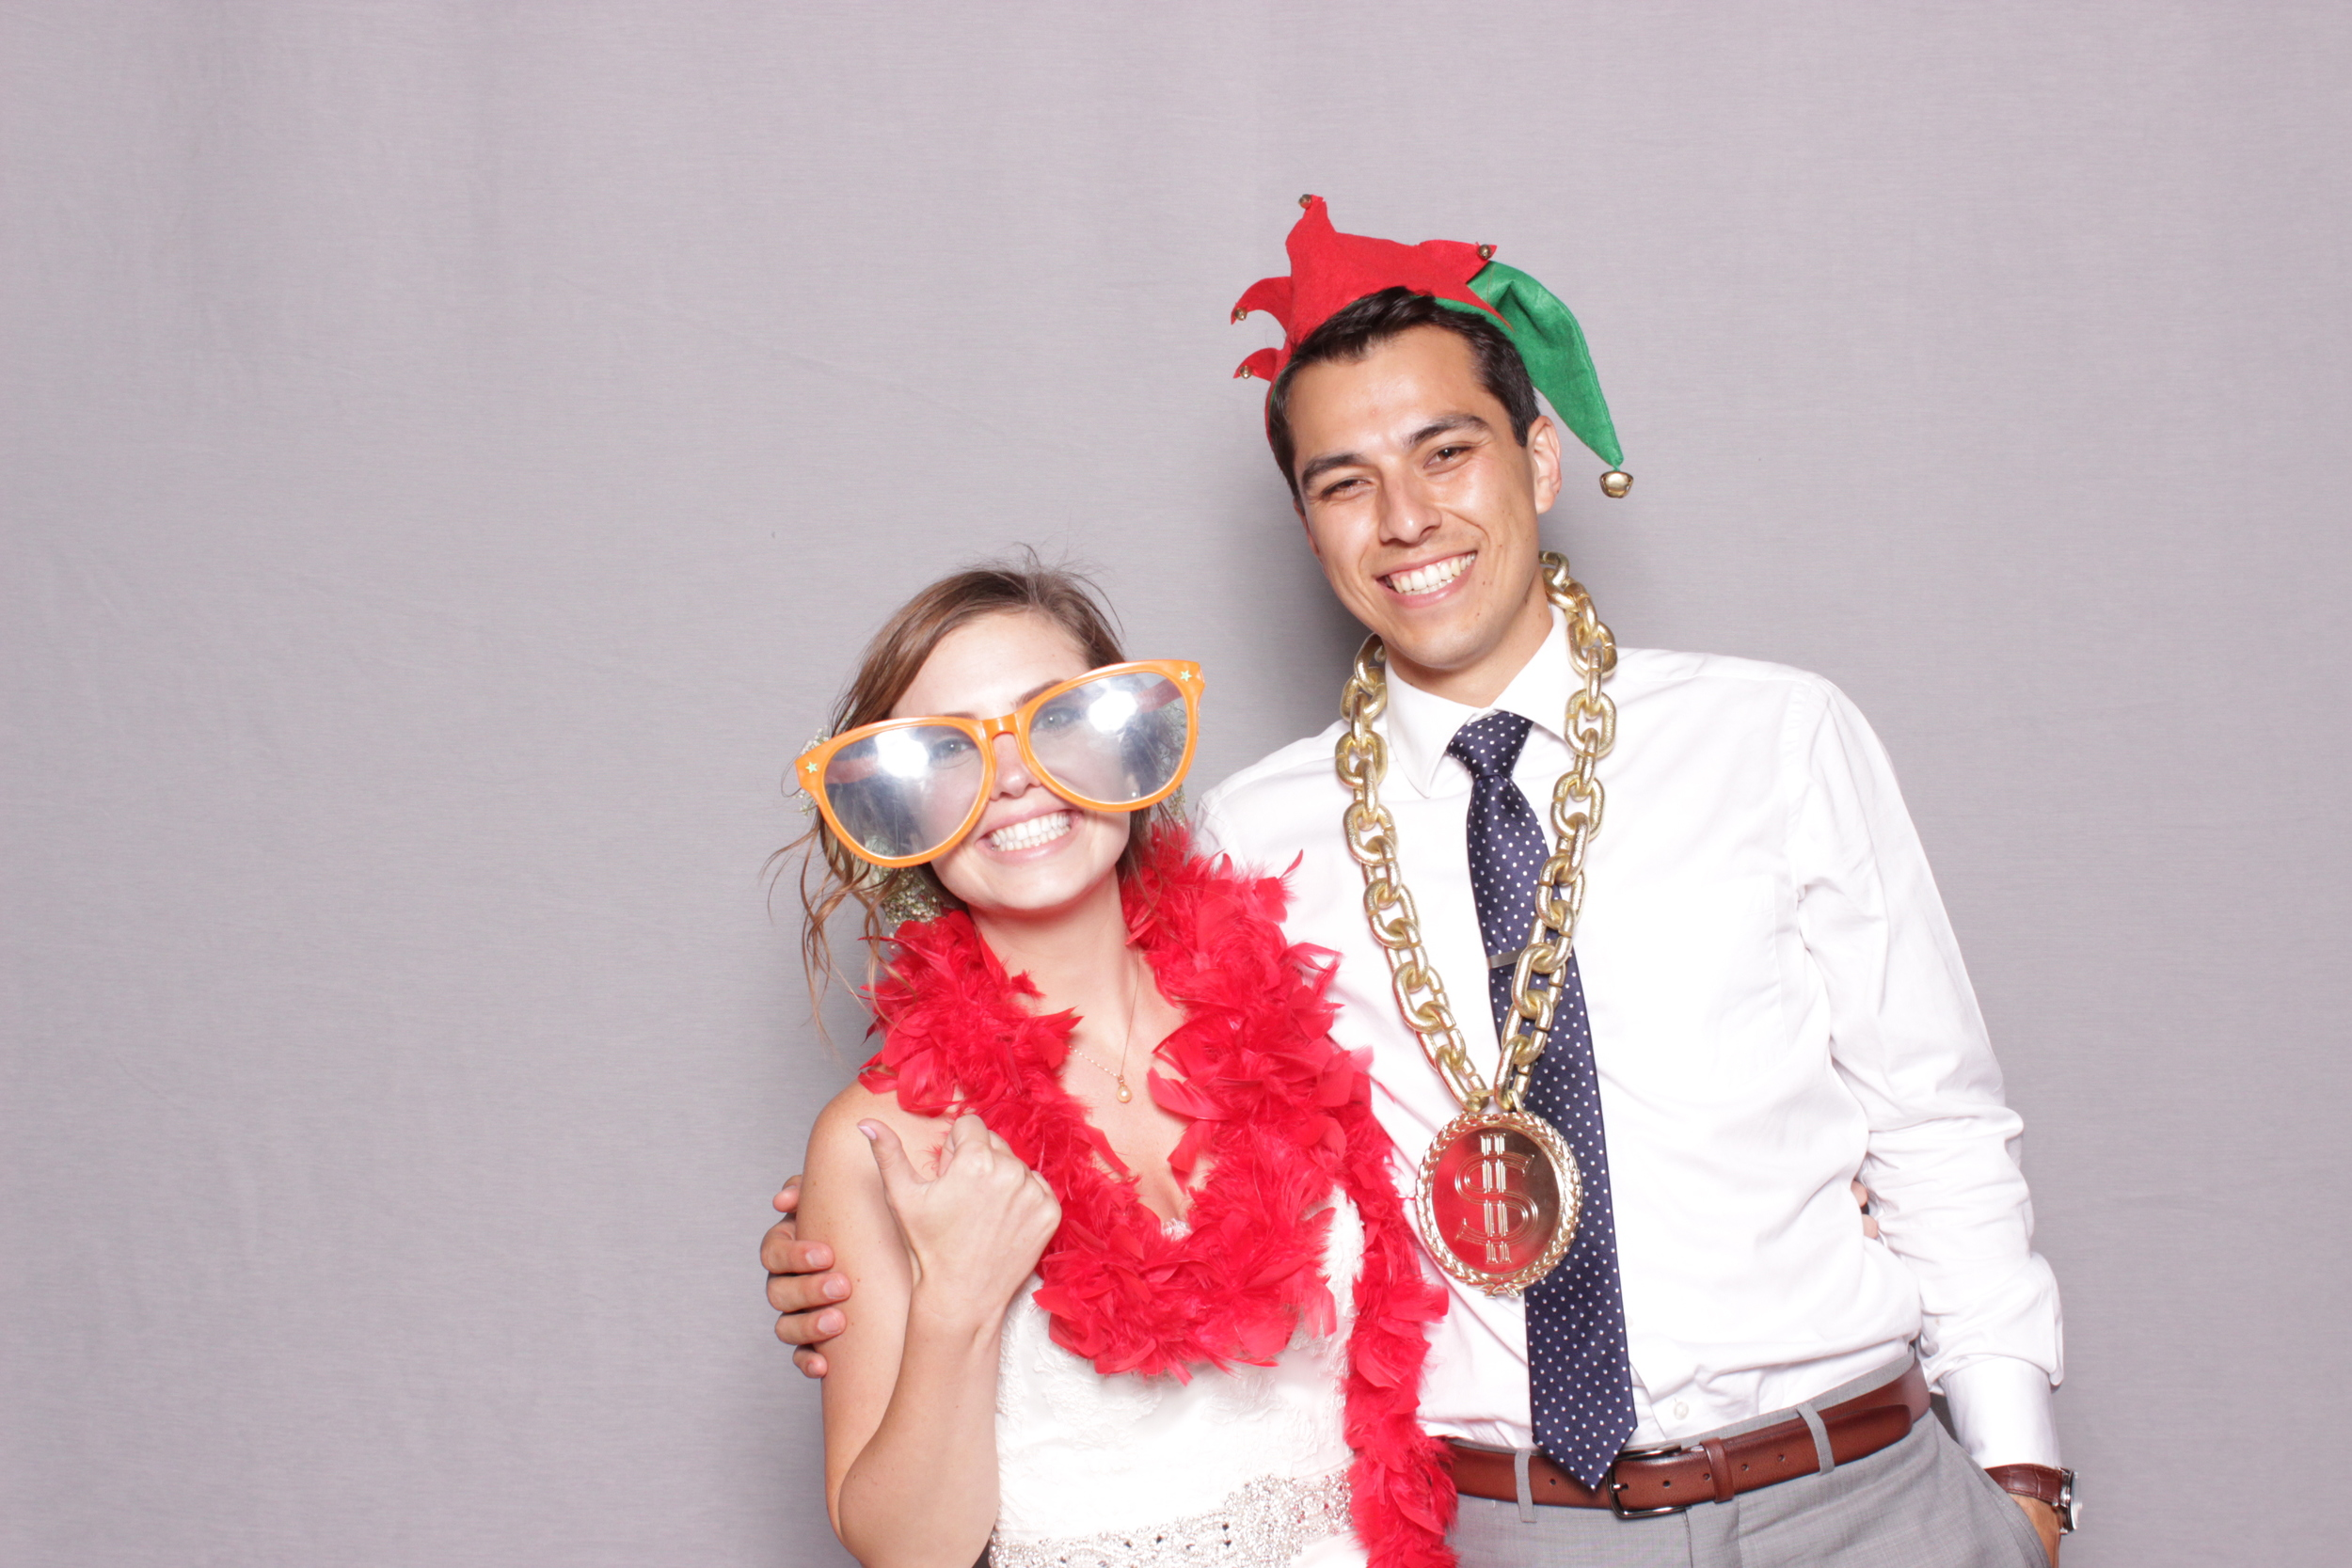 Cameron-Kristen-sacramento-photo-booth_0139.JPG